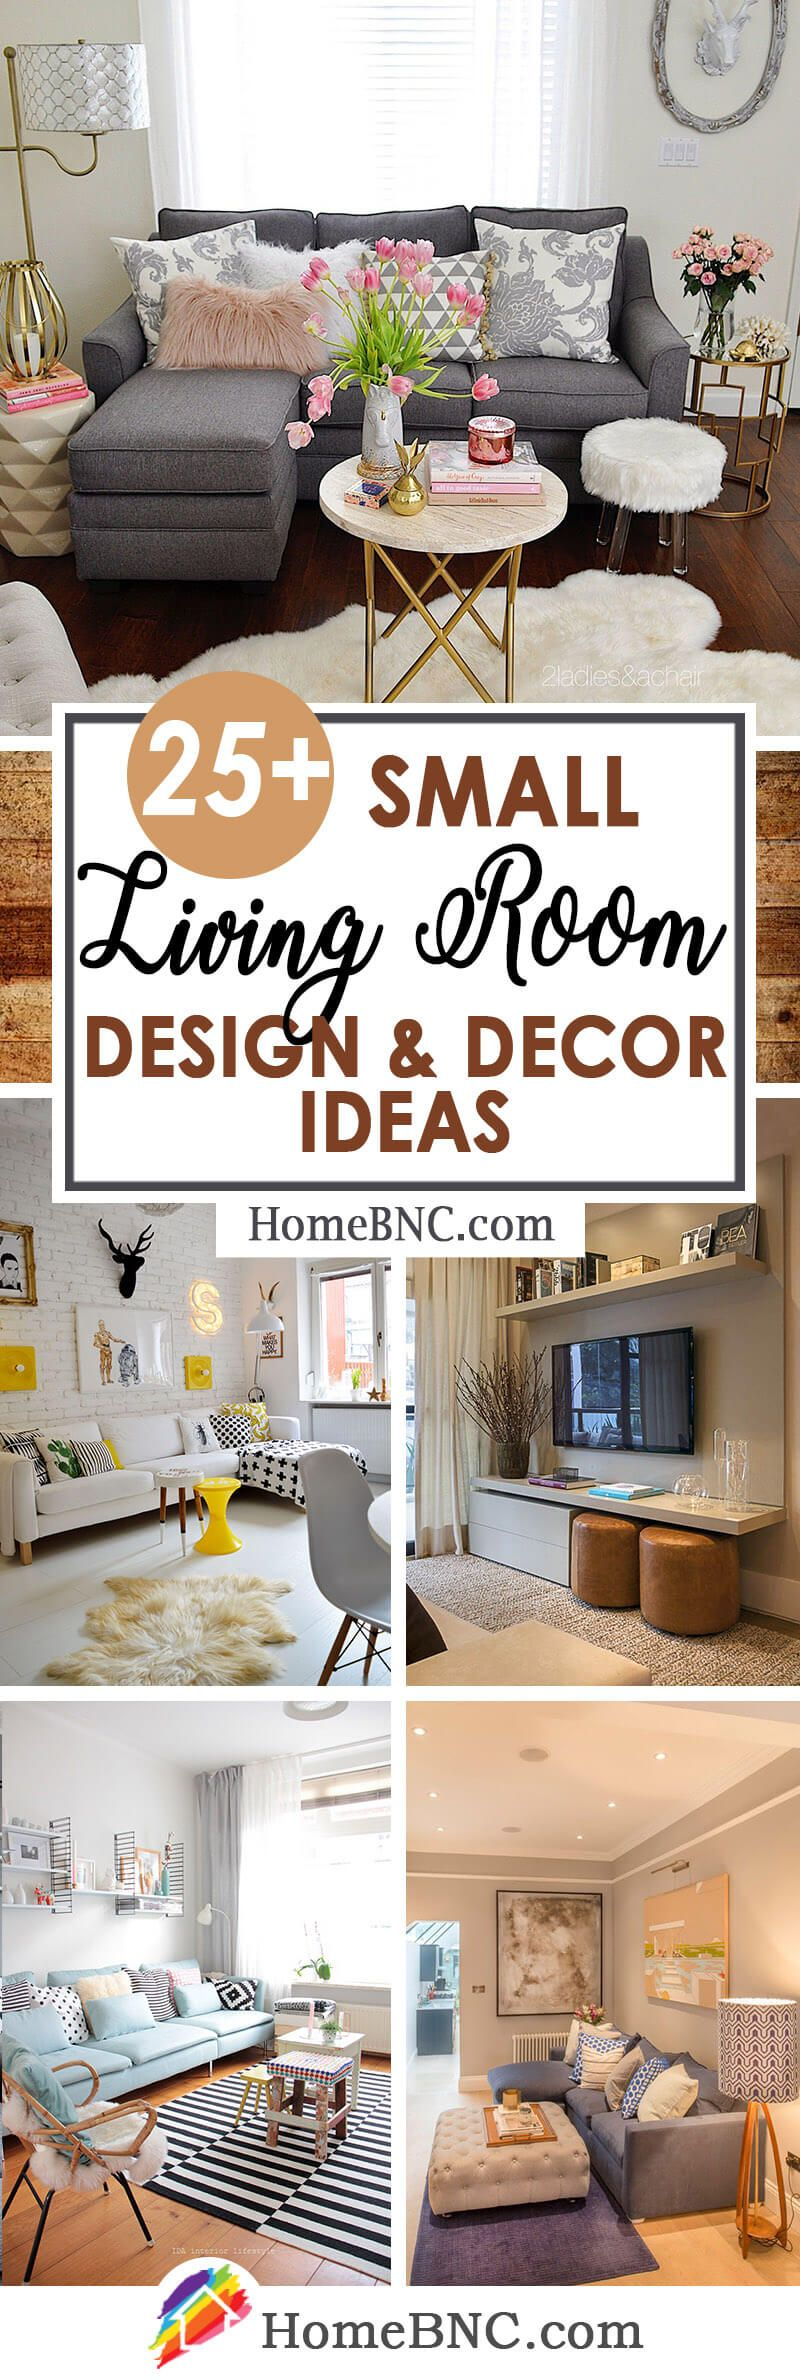 25 Unique Small Living Room Design And Decor Ideas To Maximize Your Space Condo Living Room Small Living Room Decor Small Living Room Design Living room layout ideas